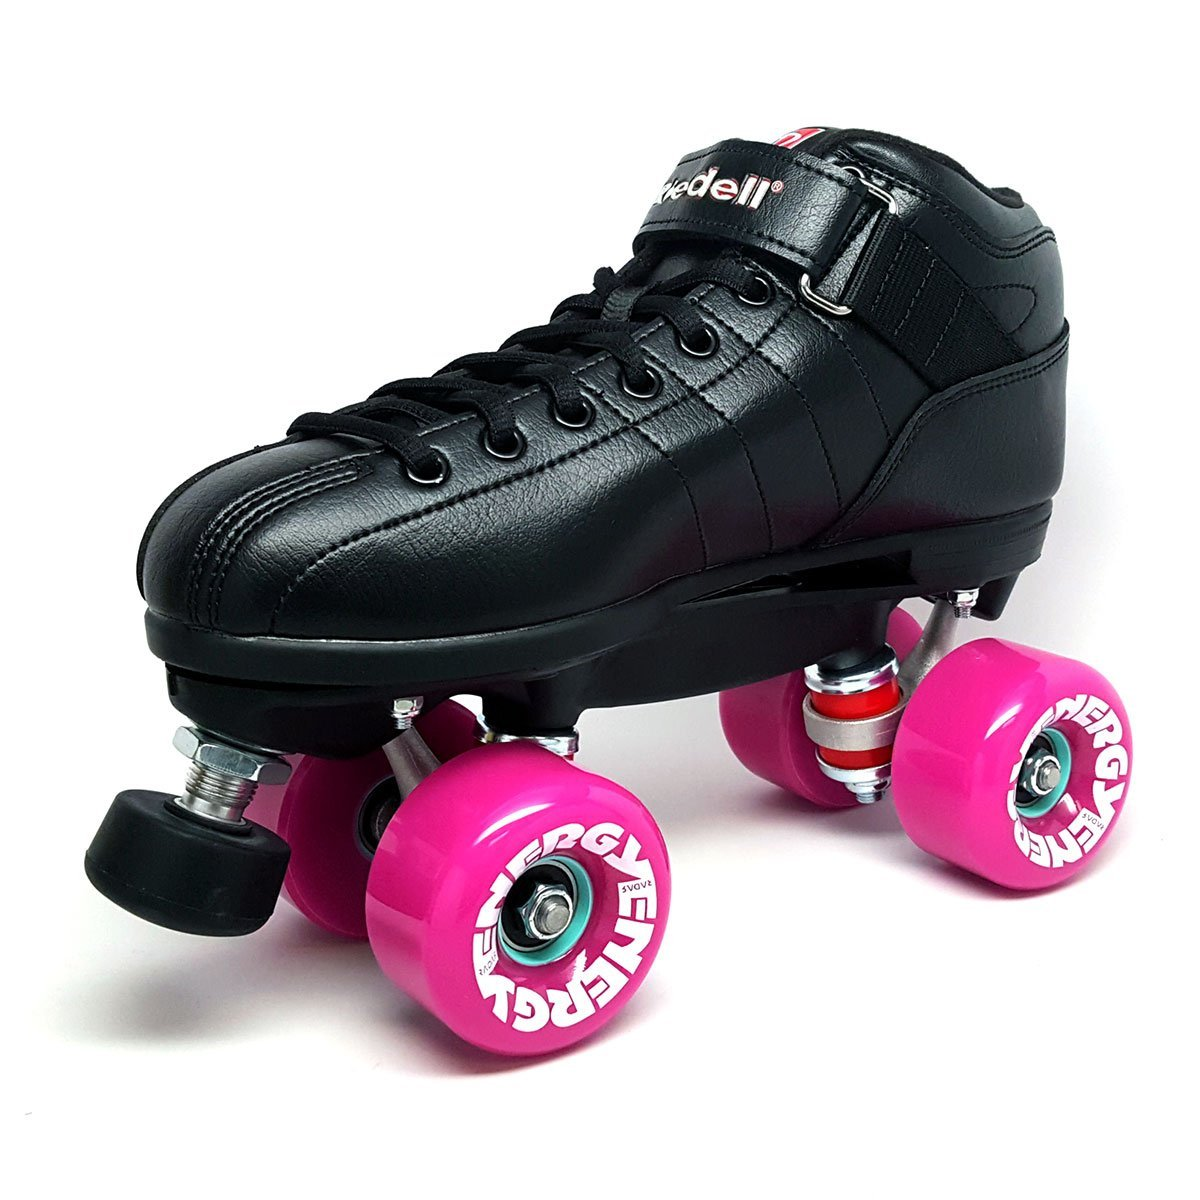 Riedell R3 Energy Purple Outdoor Quad Roller Derby Speed Skates by Riedell